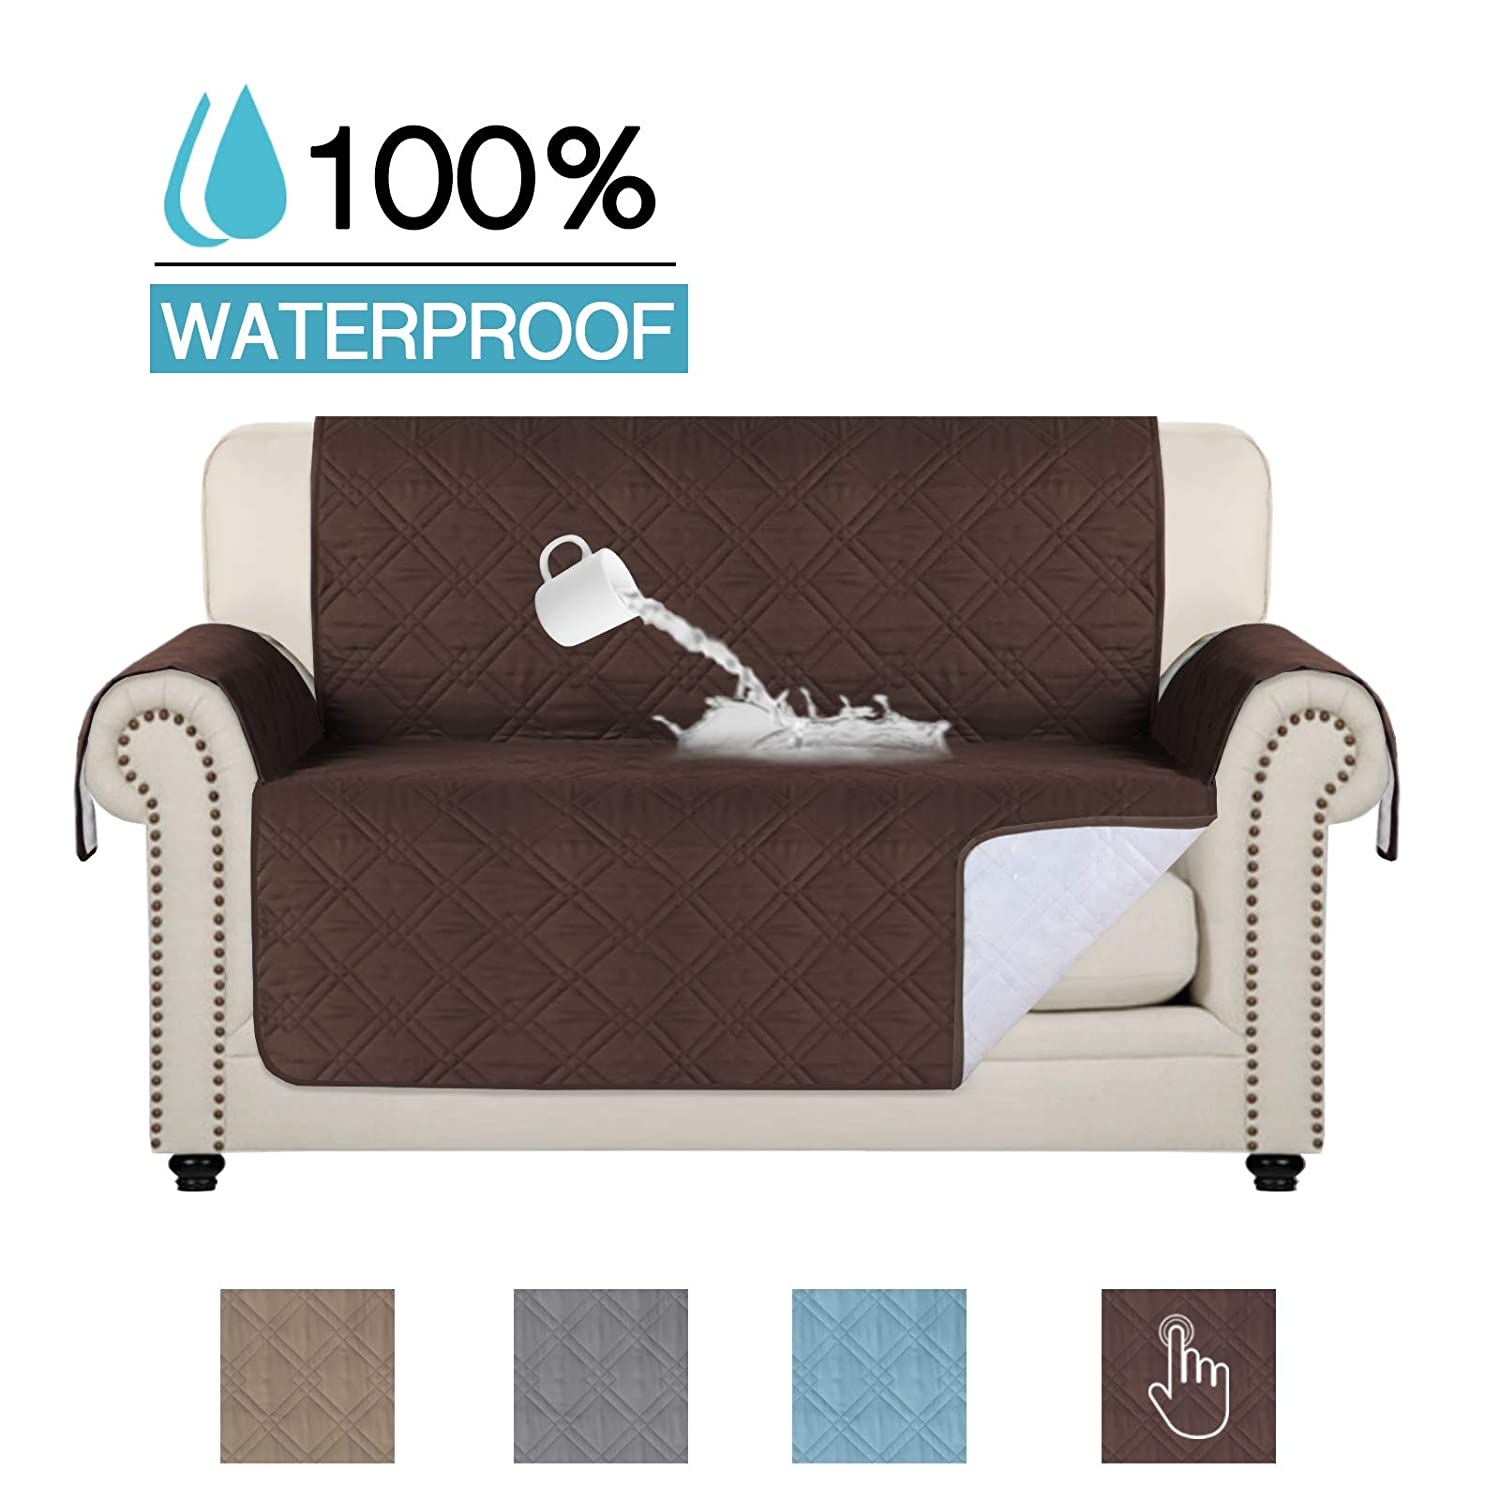 Pleasant 100 Waterproof Pets Loveseat Slipcover Deluxe Reversible Quilted Furniture Protector Love Seat Couch Covers Non Slip Backing Machine Washable Squirreltailoven Fun Painted Chair Ideas Images Squirreltailovenorg